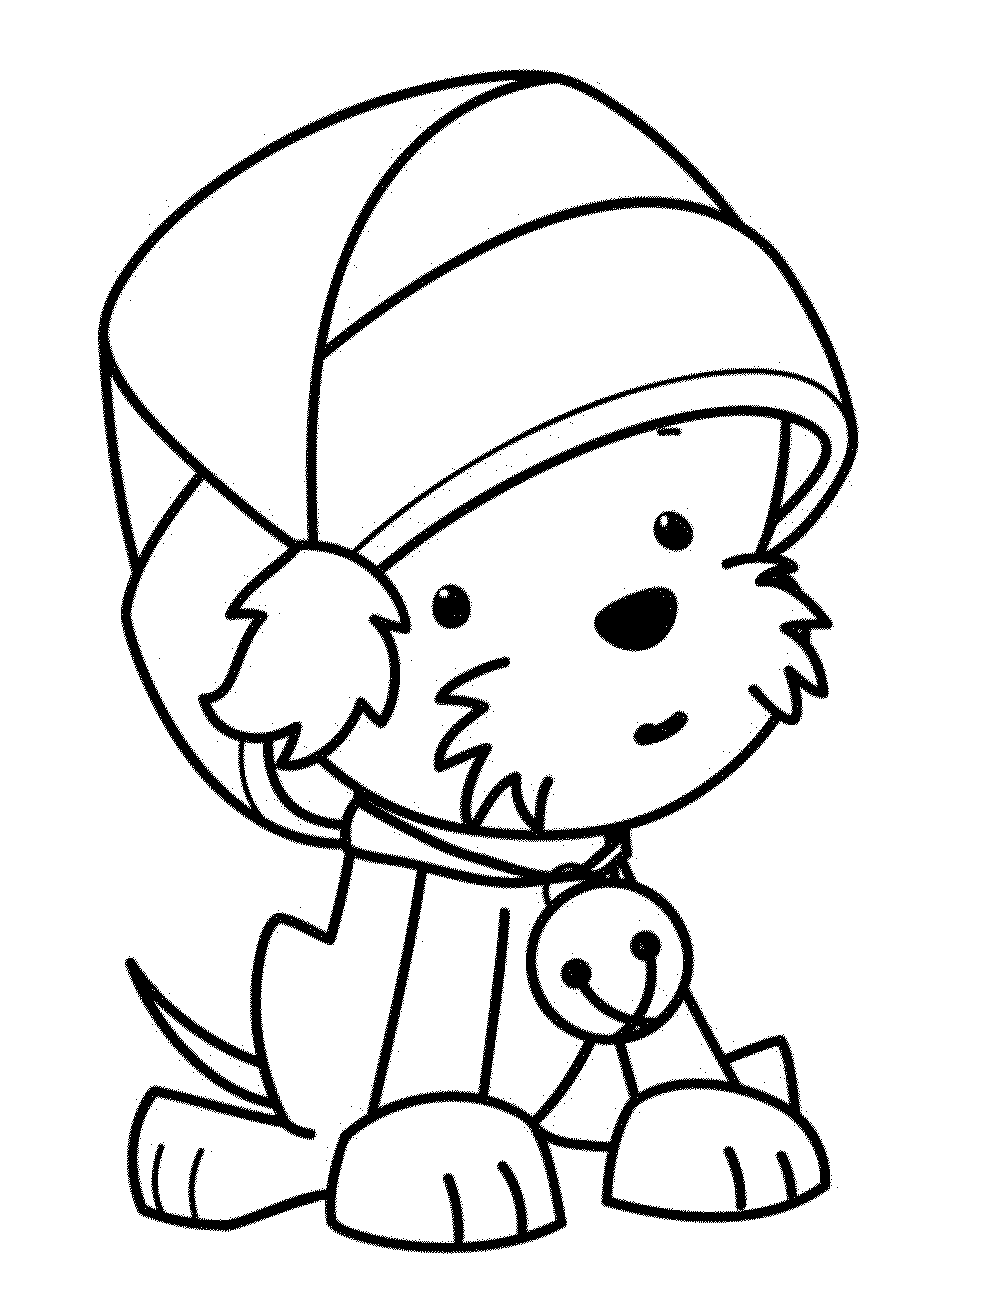 Biscuit The Puppy Coloring Pages - Coloring Home